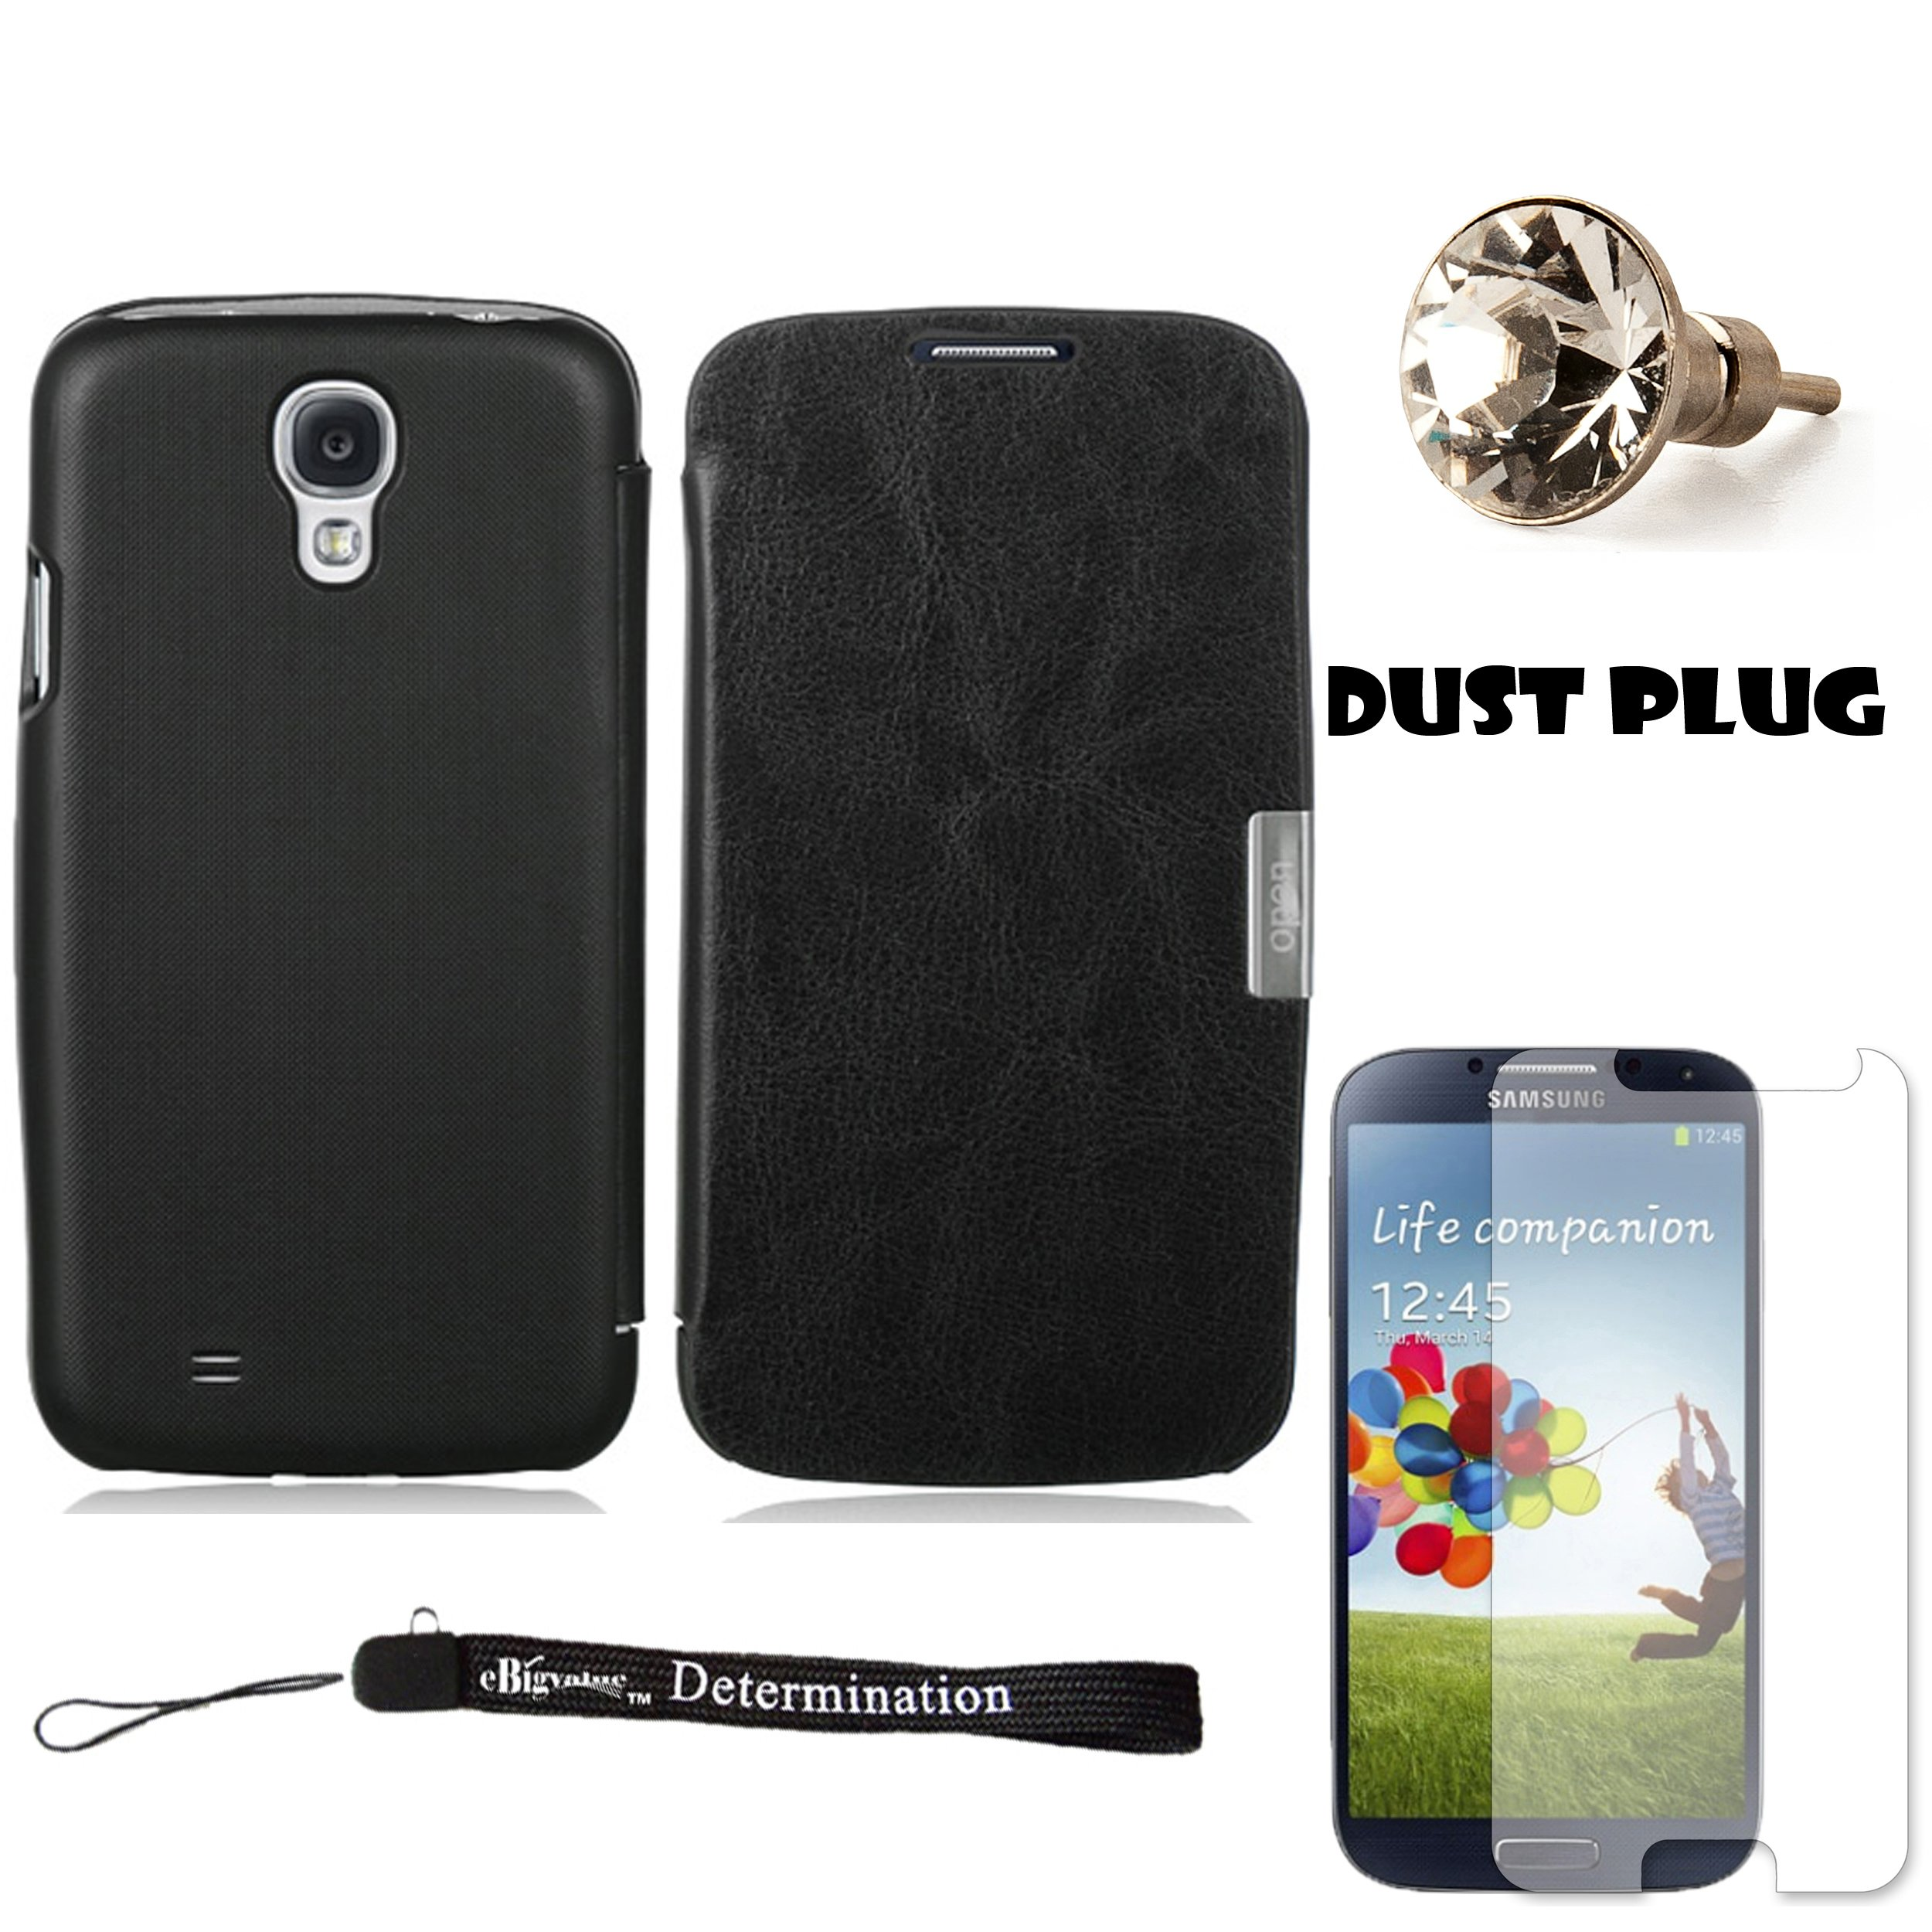 Black Secure Flip Case For Samsung Galaxy S4 Android Smartphone 4G LTE (Jelly Bean) + Silver Swarovski Crystal Headphone Jack Dust Plug + Samsung Galaxy S4 Screen Guard Protector + an eBigValue  Determination Hand Strap